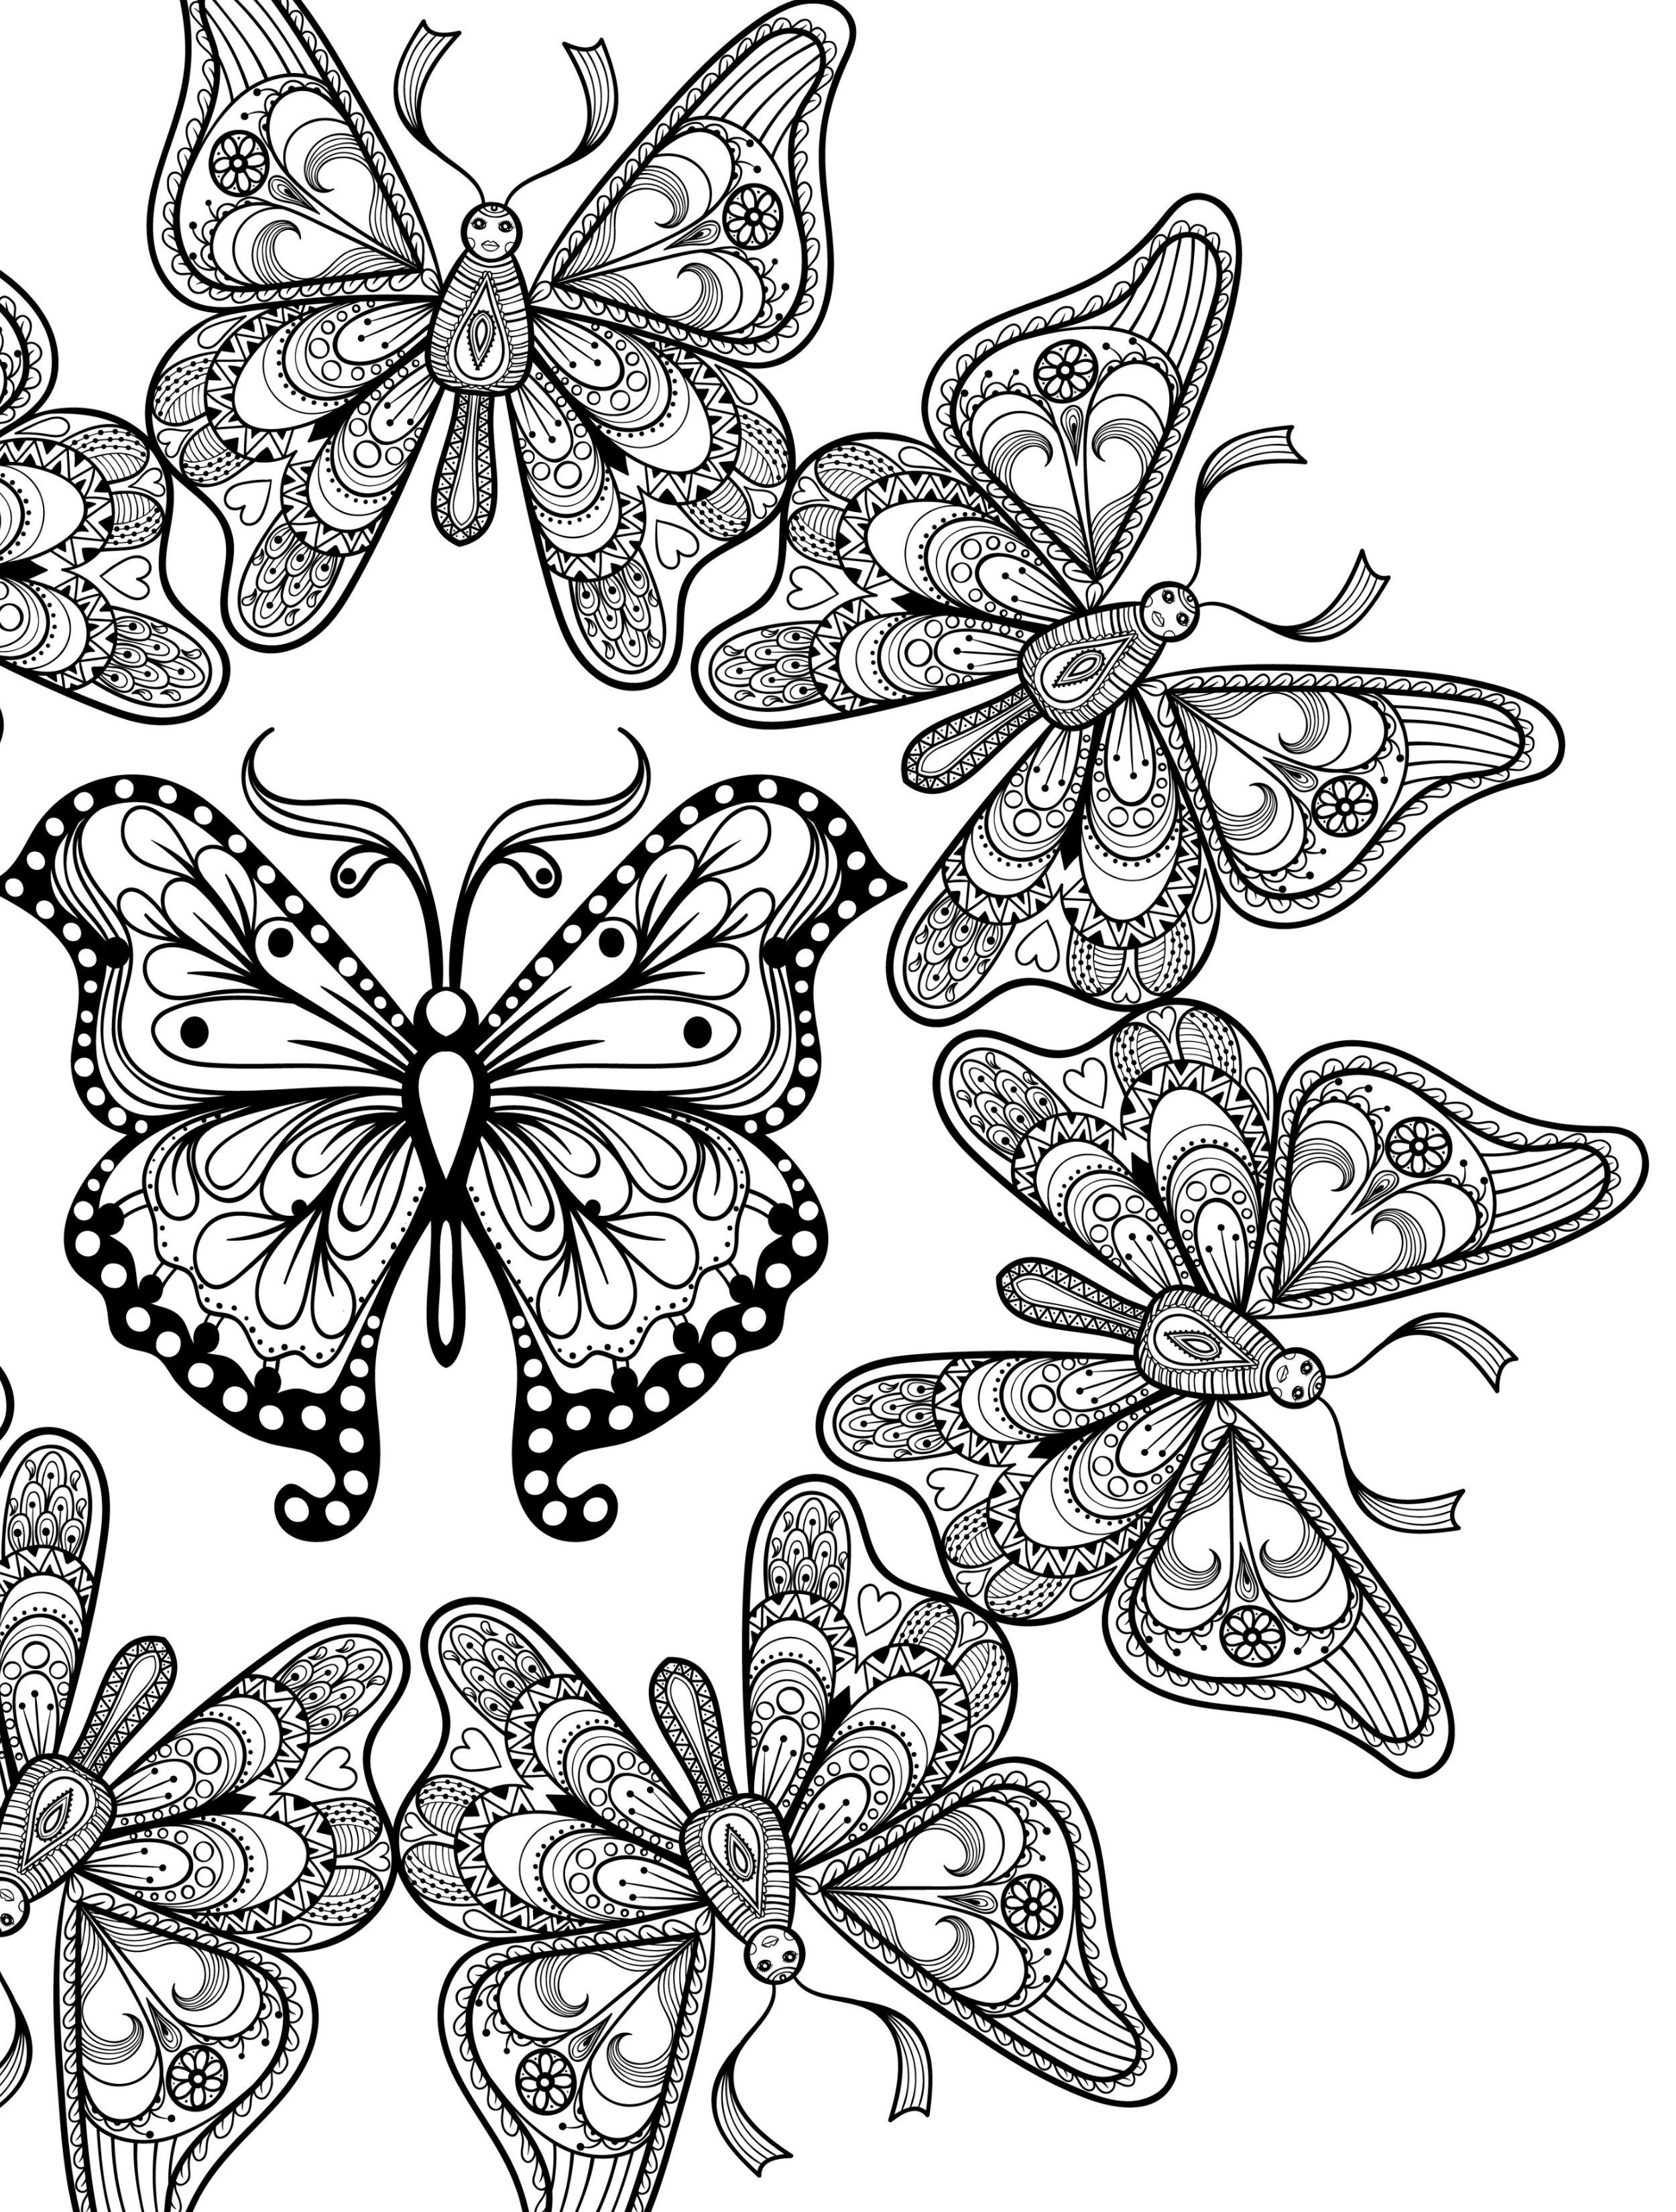 butterfly mandala coloring pages printable butterfly mandala pdf coloring pages 48 mandala coloring butterfly pages